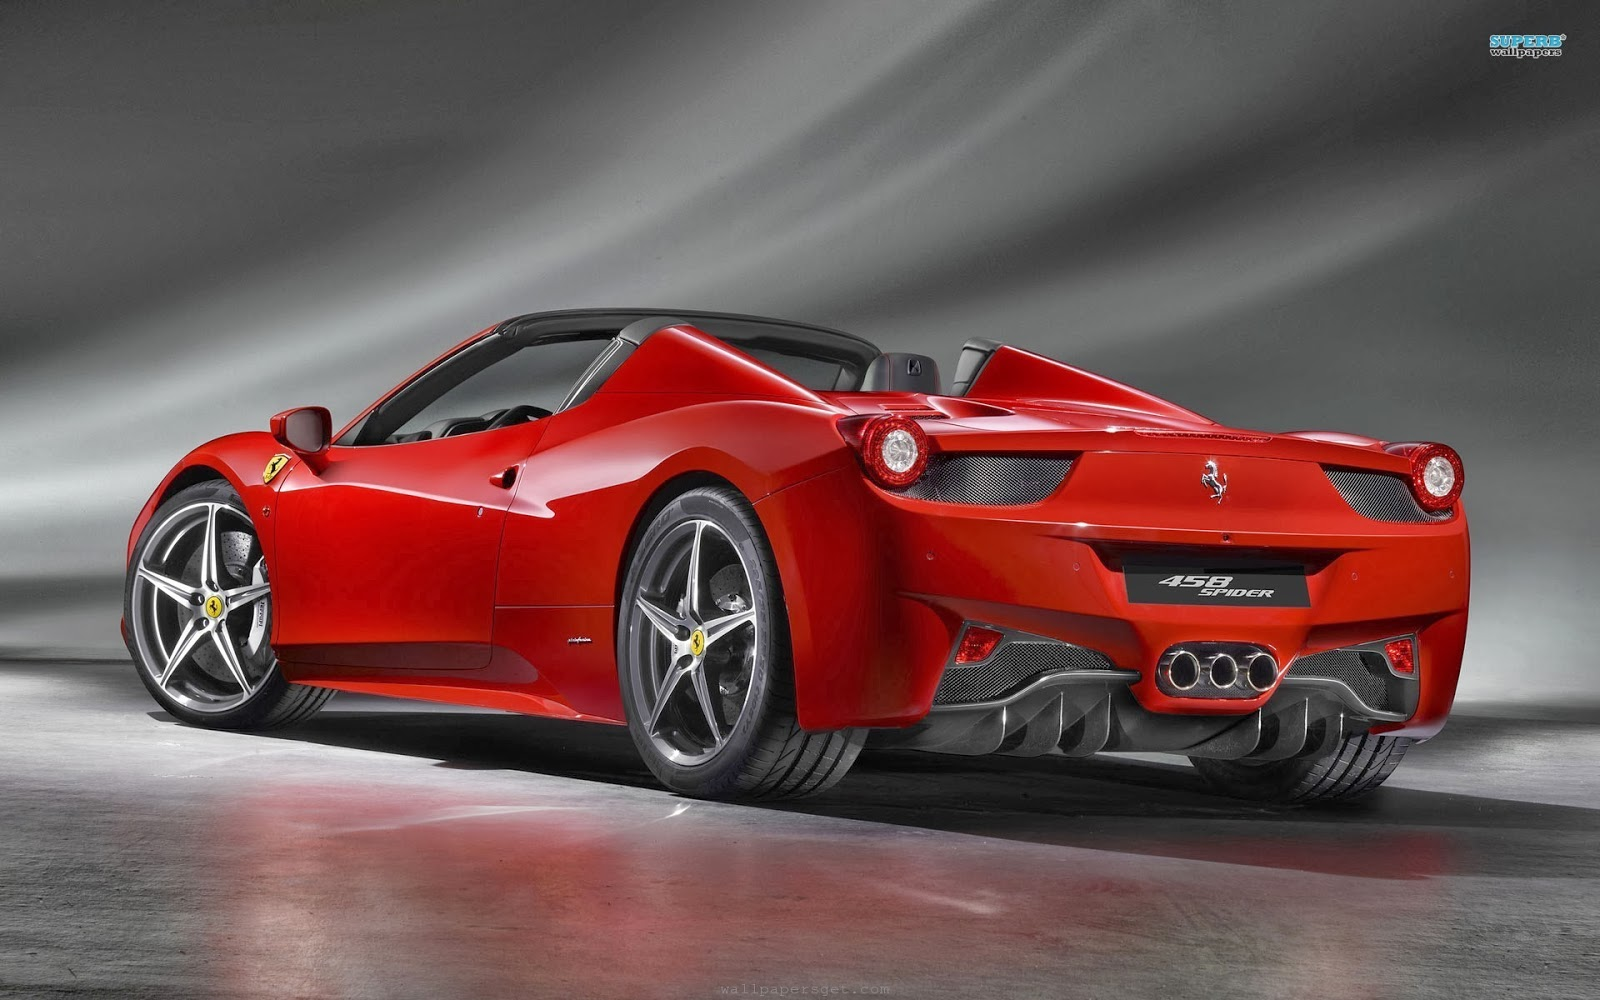 Hd wallpapers ferrari 458 italia wallpapers for Wallpaper italia